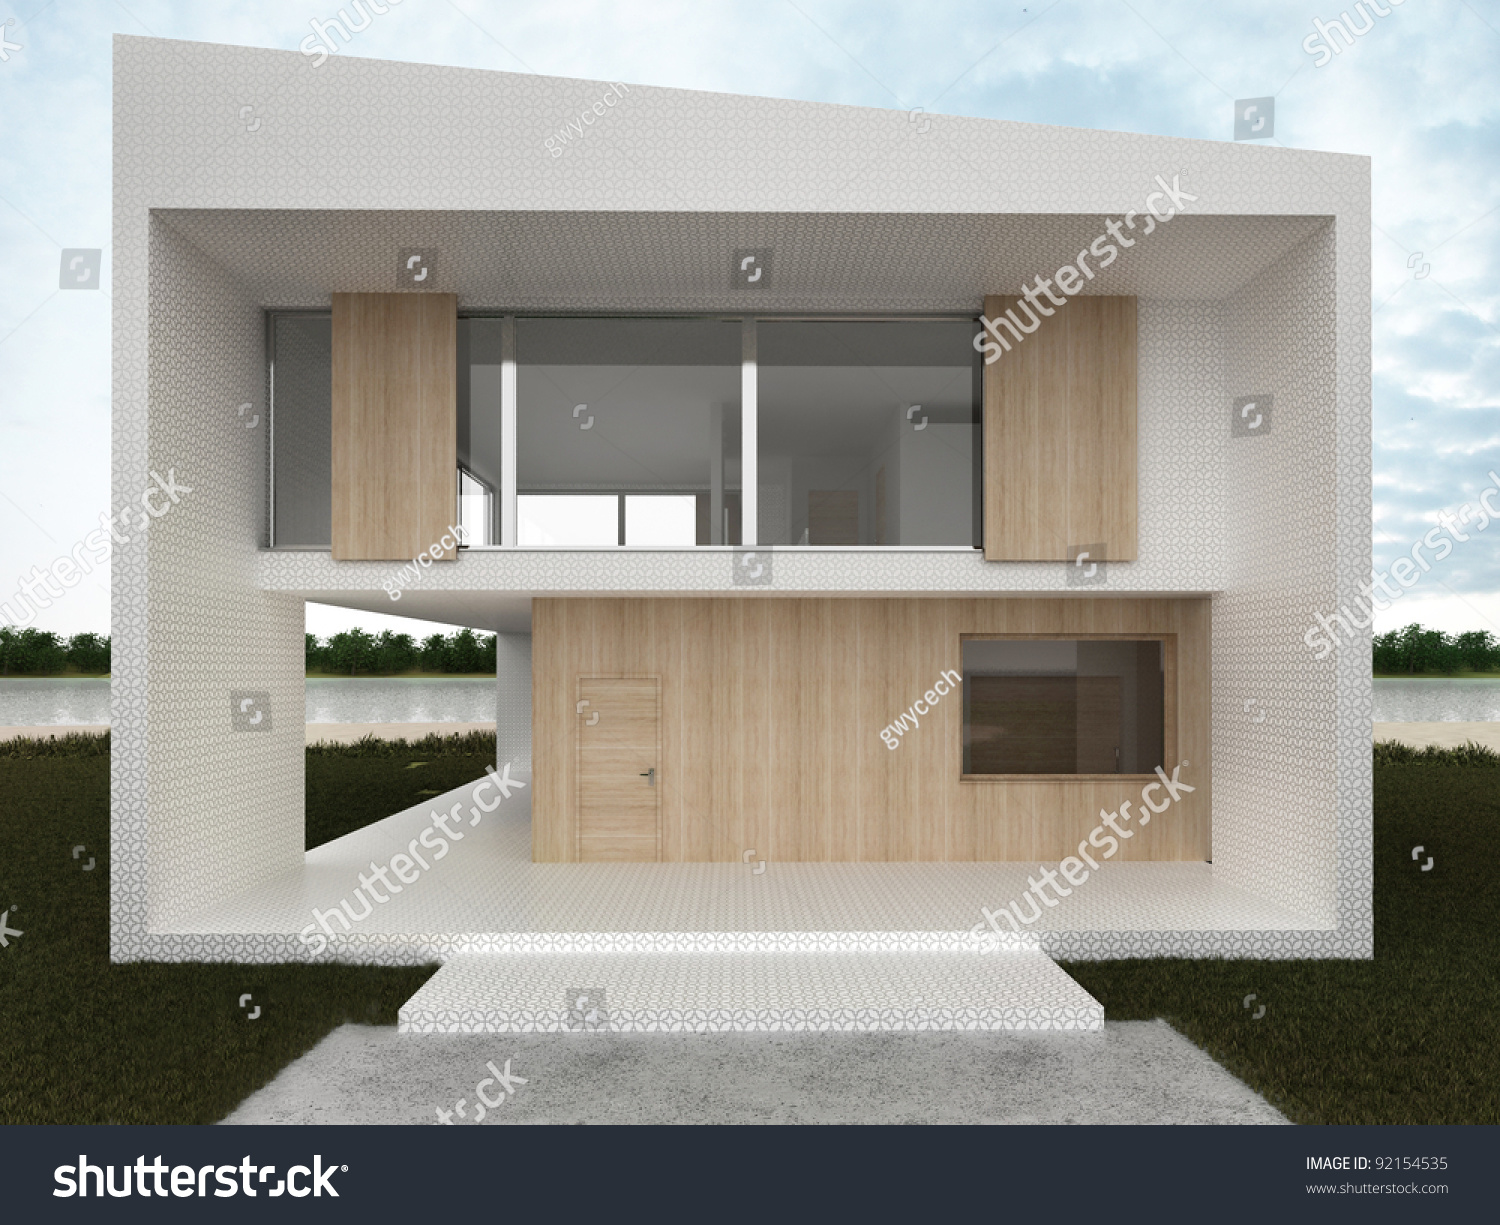 Modern house design computer generated visualization mosaic and wood facade in european style of